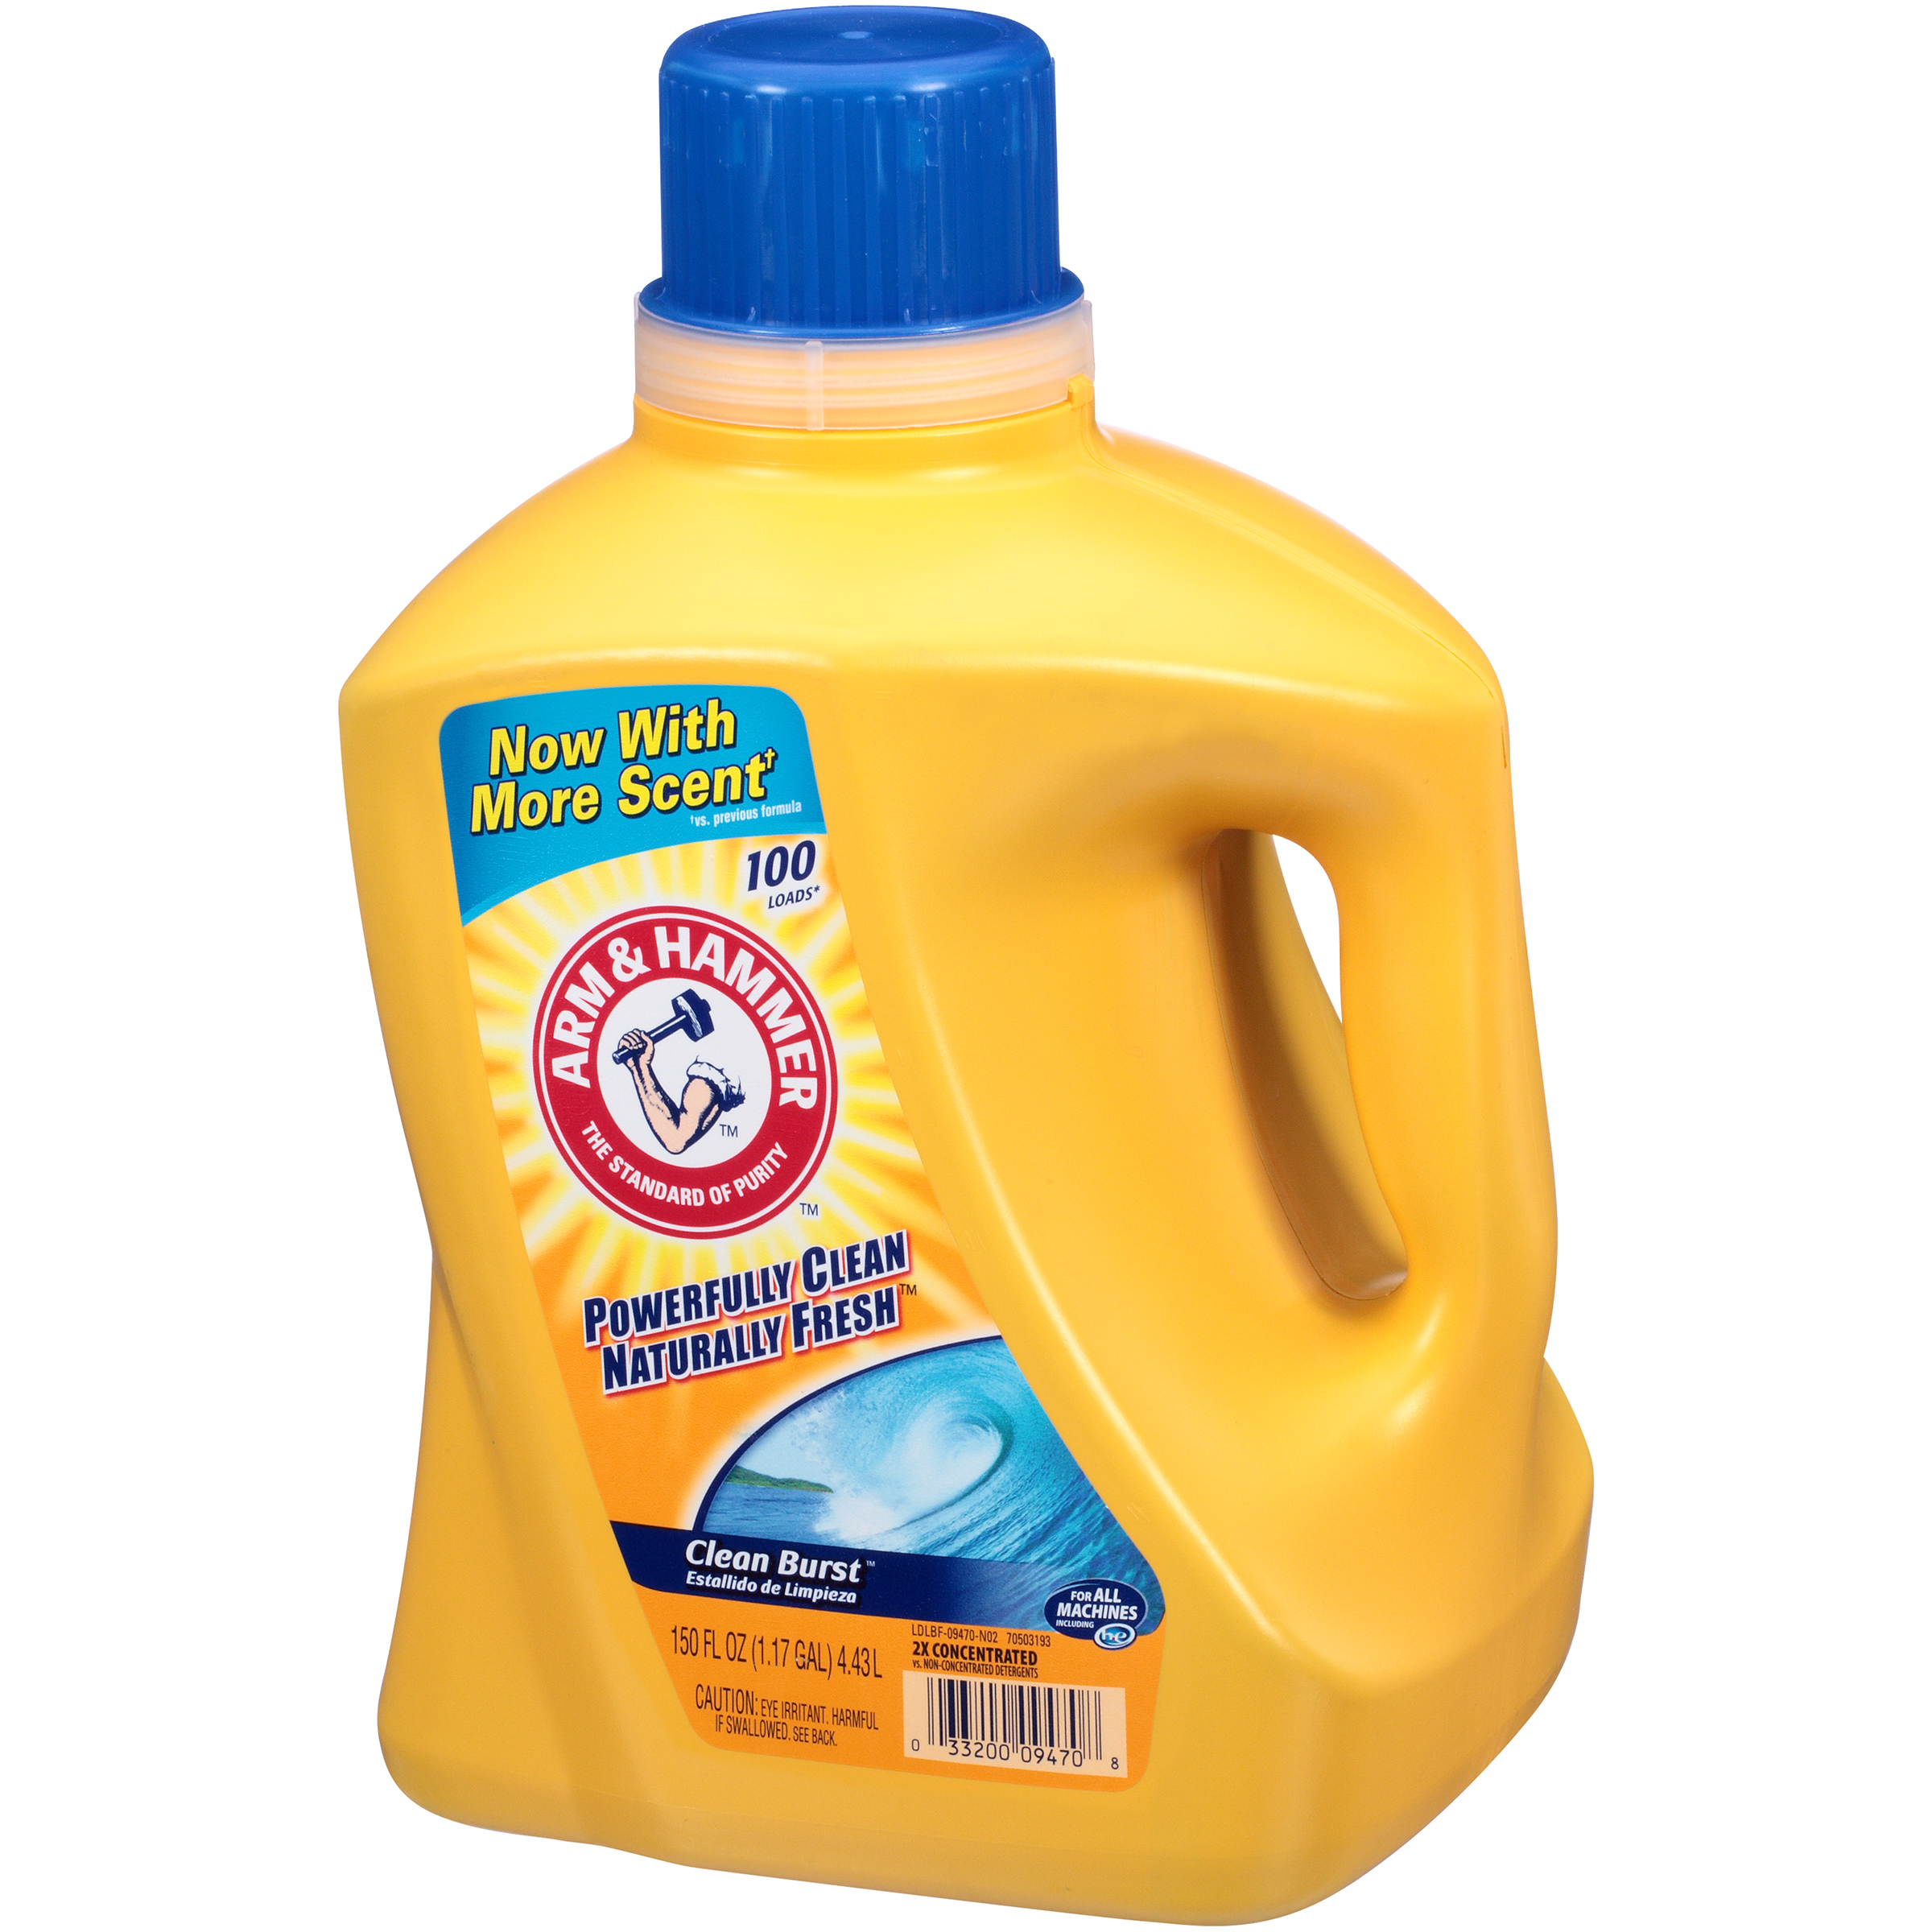 Arm & Hammer 2X Concentrated Clean Burst Liquid Laundry Detergent 150 FL OZ JUG